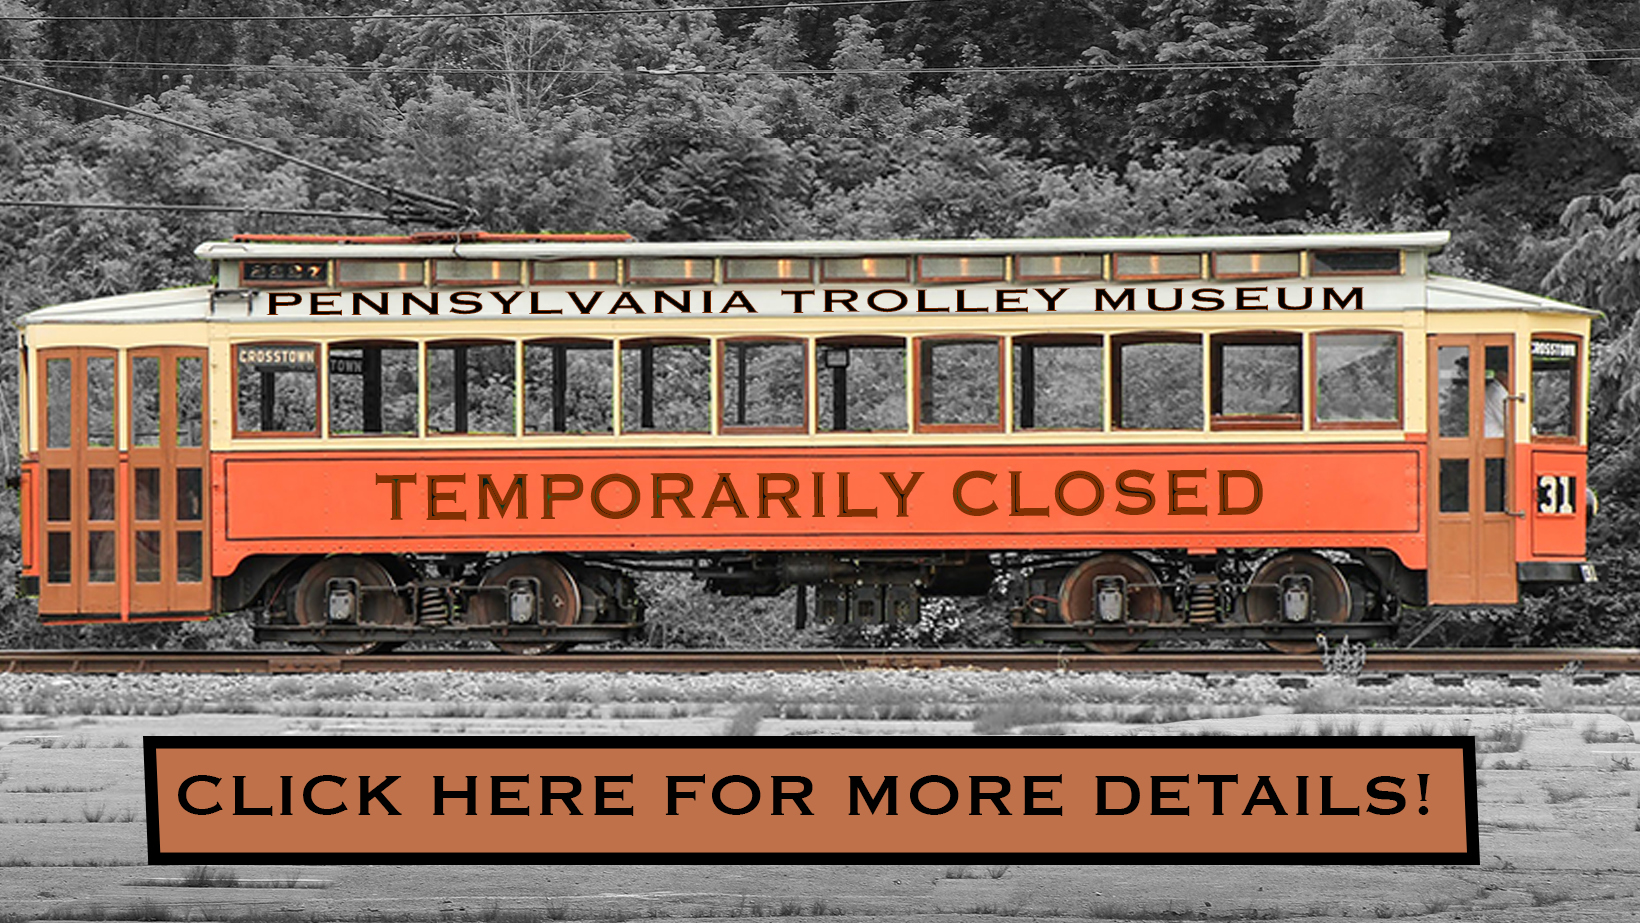 PENNSYLVANIA TROLLEY MUSEUM TEMPORARILY CLOSED CLICK HERE FOR MORE DETAILS